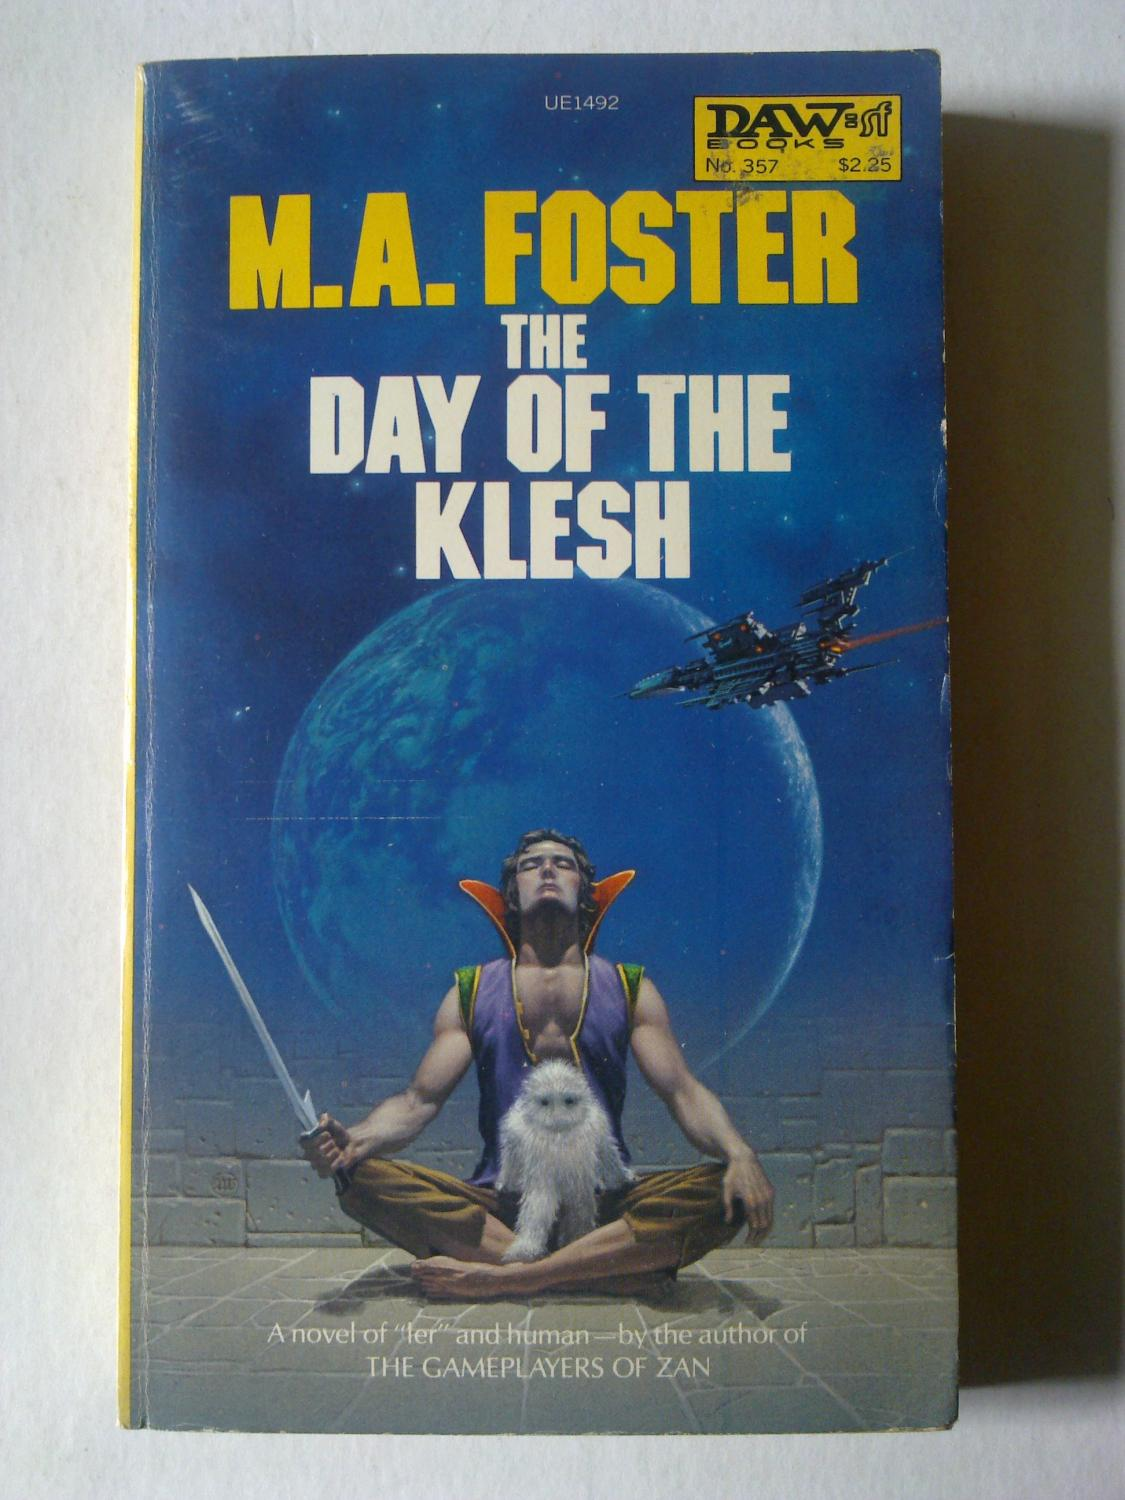 The Day Of The Klesh - FOSTER, M. A